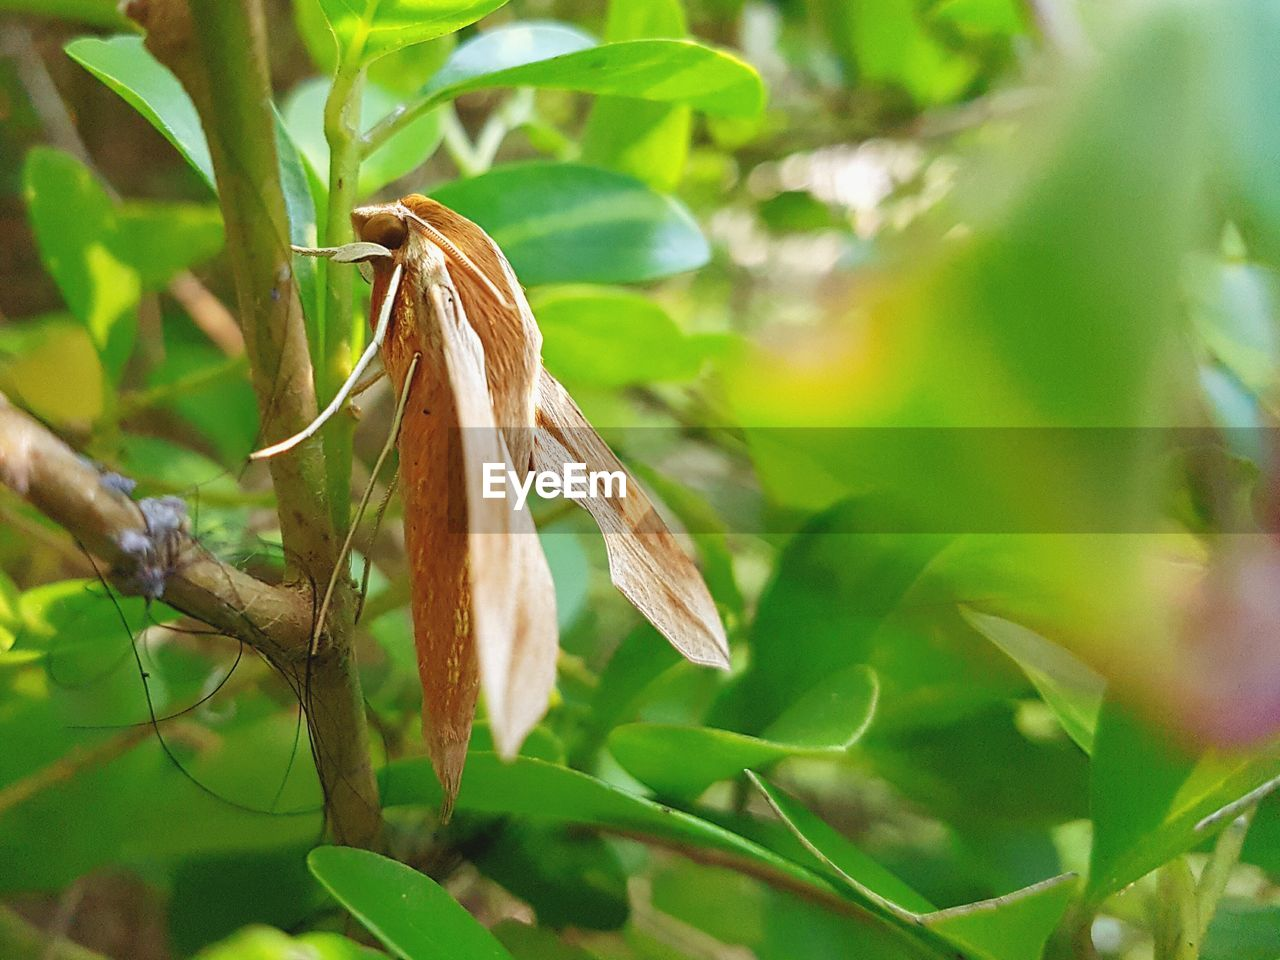 plant, growth, leaf, plant part, close-up, no people, nature, green color, day, selective focus, beauty in nature, focus on foreground, vulnerability, plant stem, tranquility, tree, freshness, outdoors, food, fragility